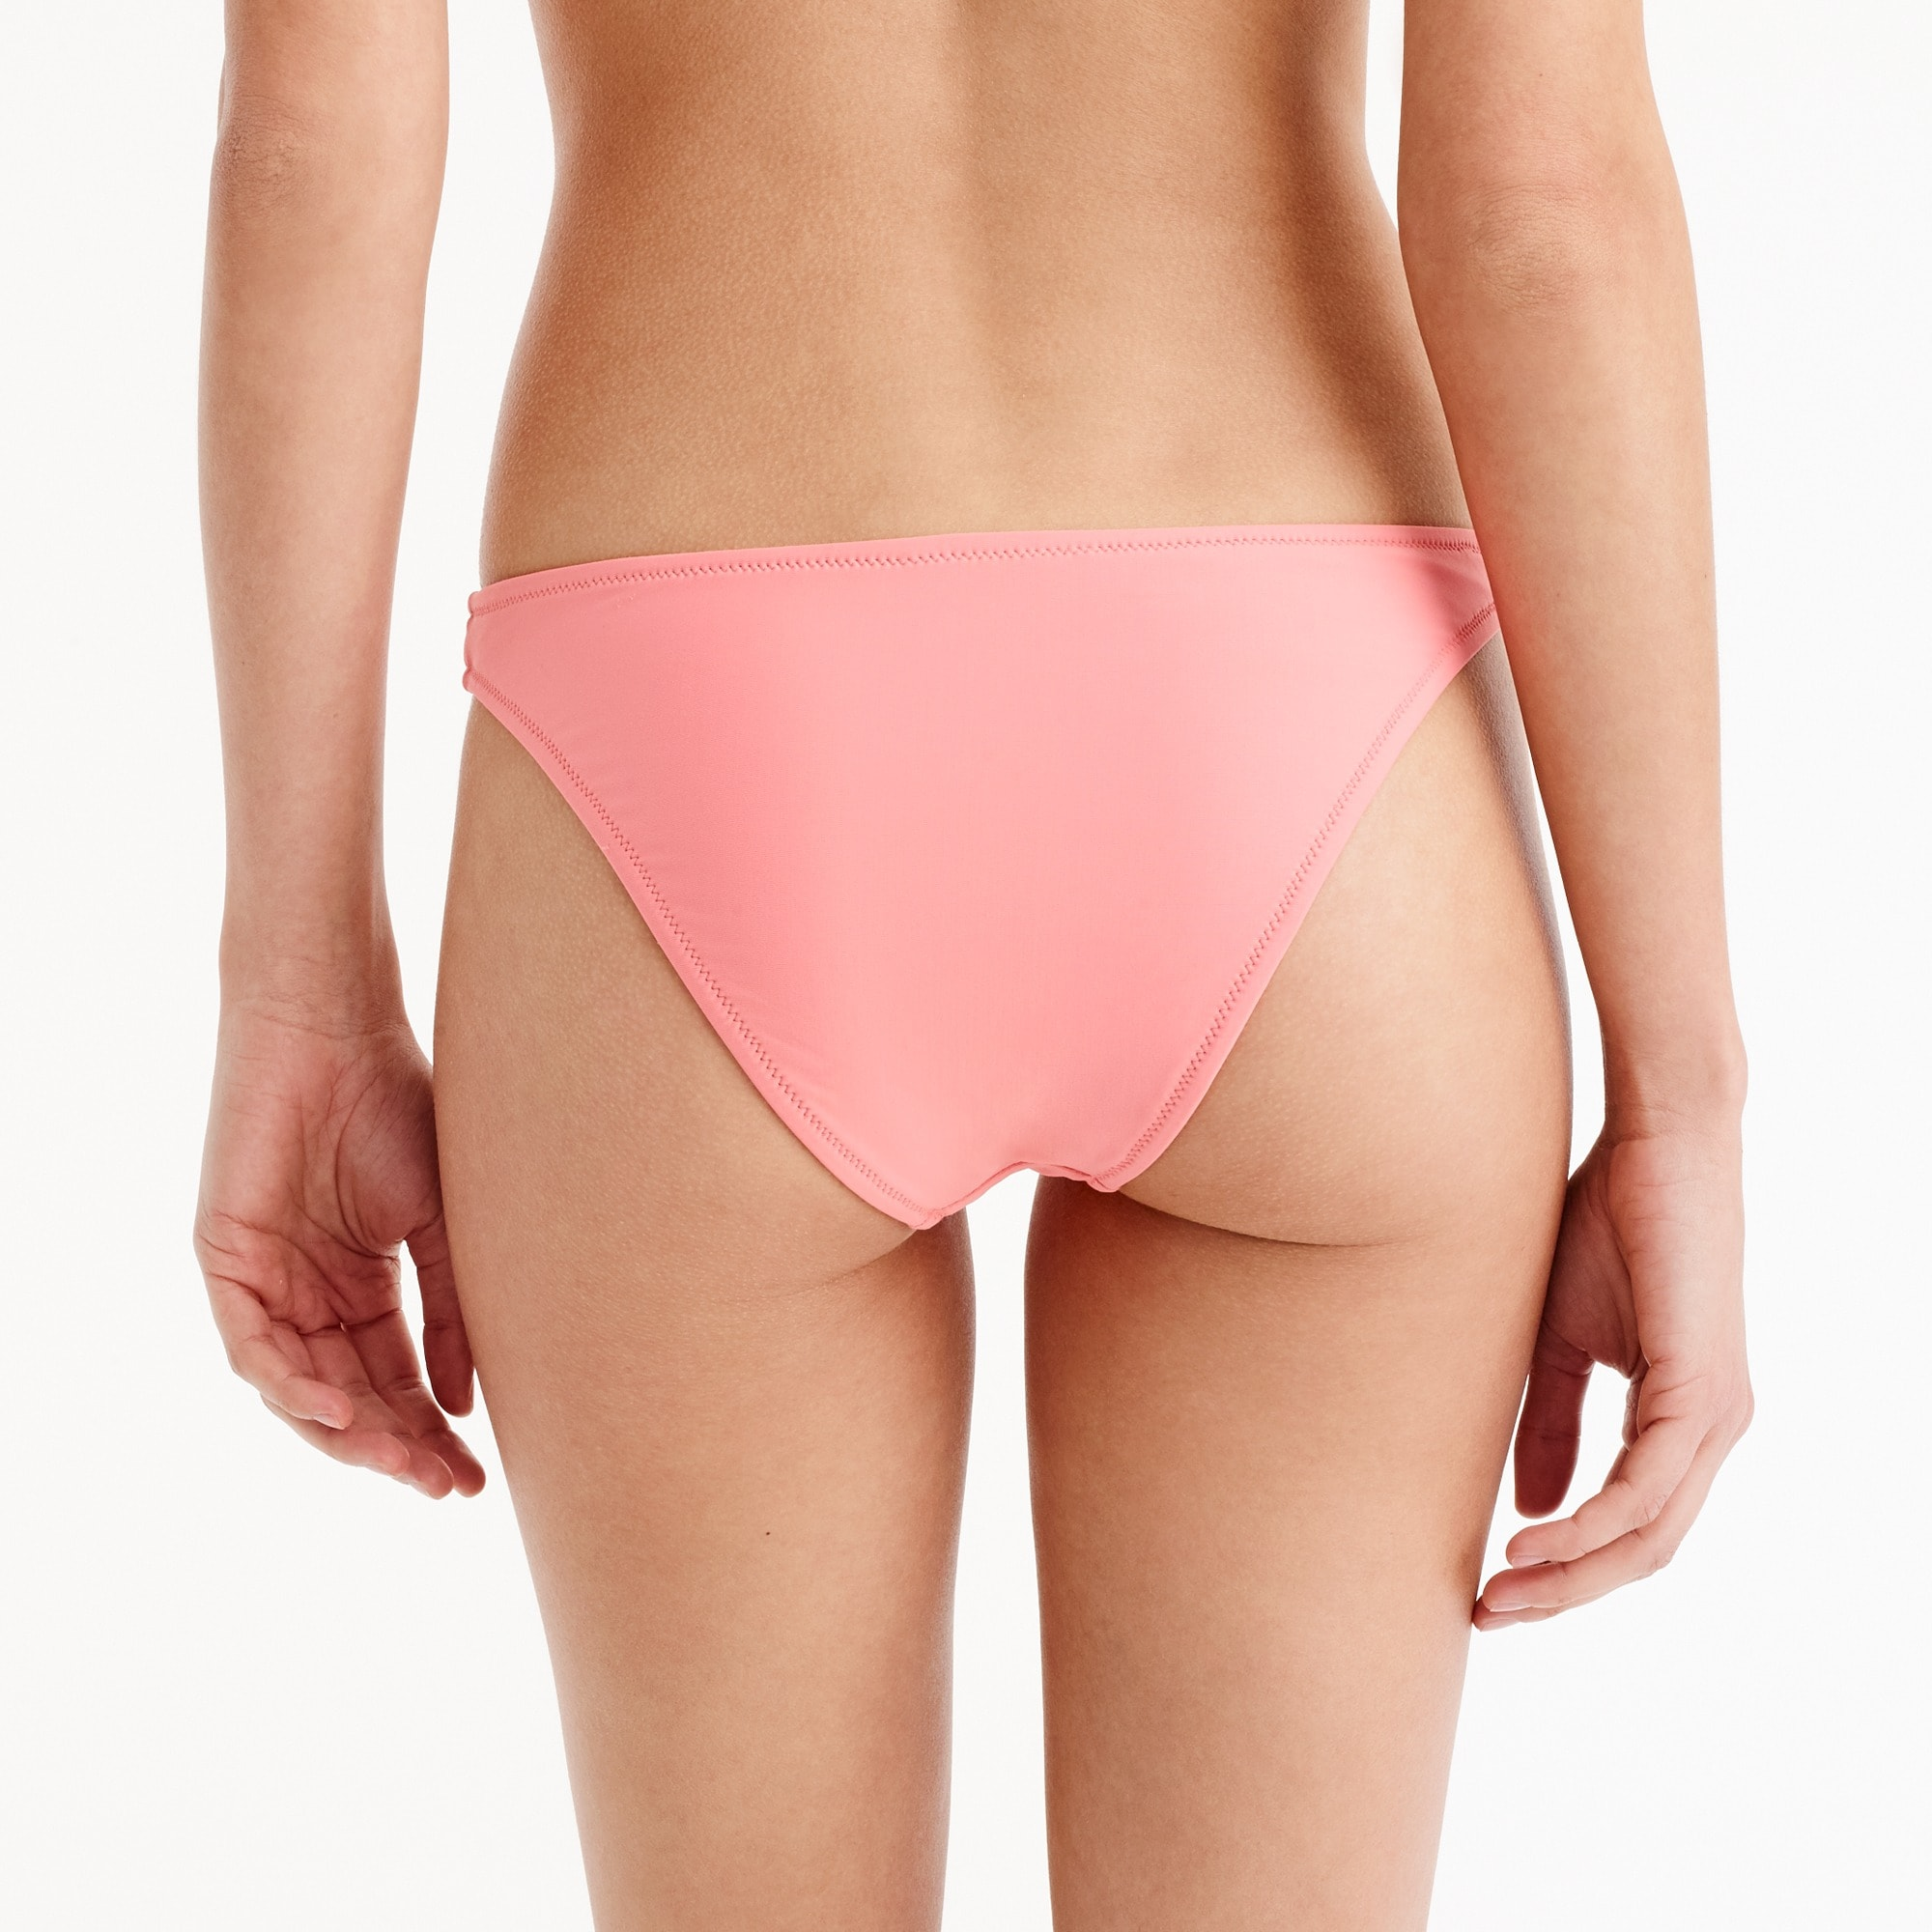 Women's 1989 high-leg bikini bottom